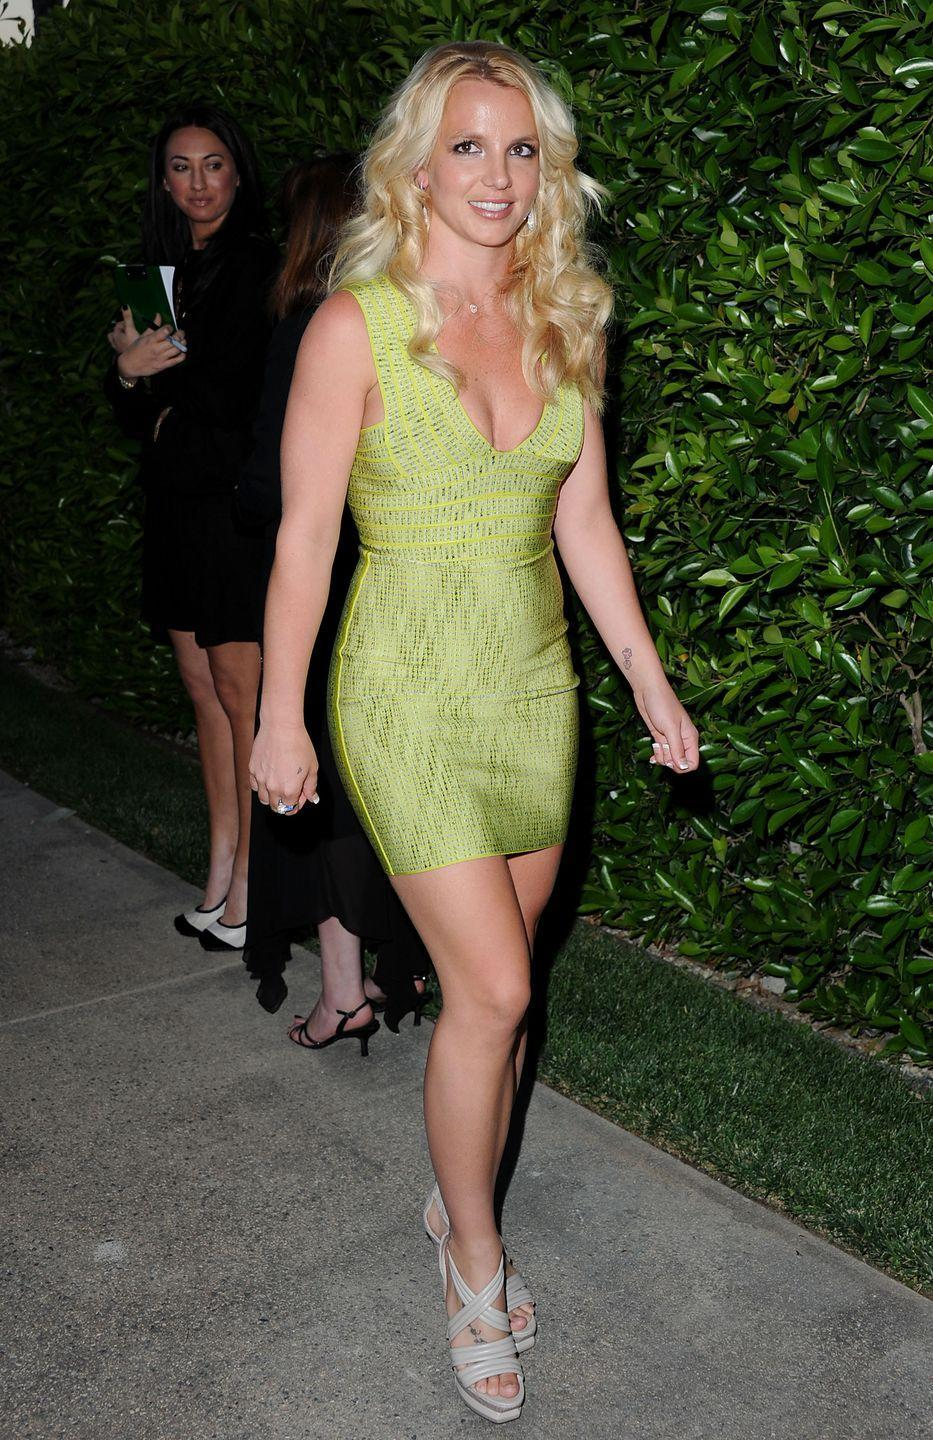 <p>Brit is glowing! Maybe it's the bright bodycon dress or her radiant smile. Whatever it is, she's rockin' the look. </p>